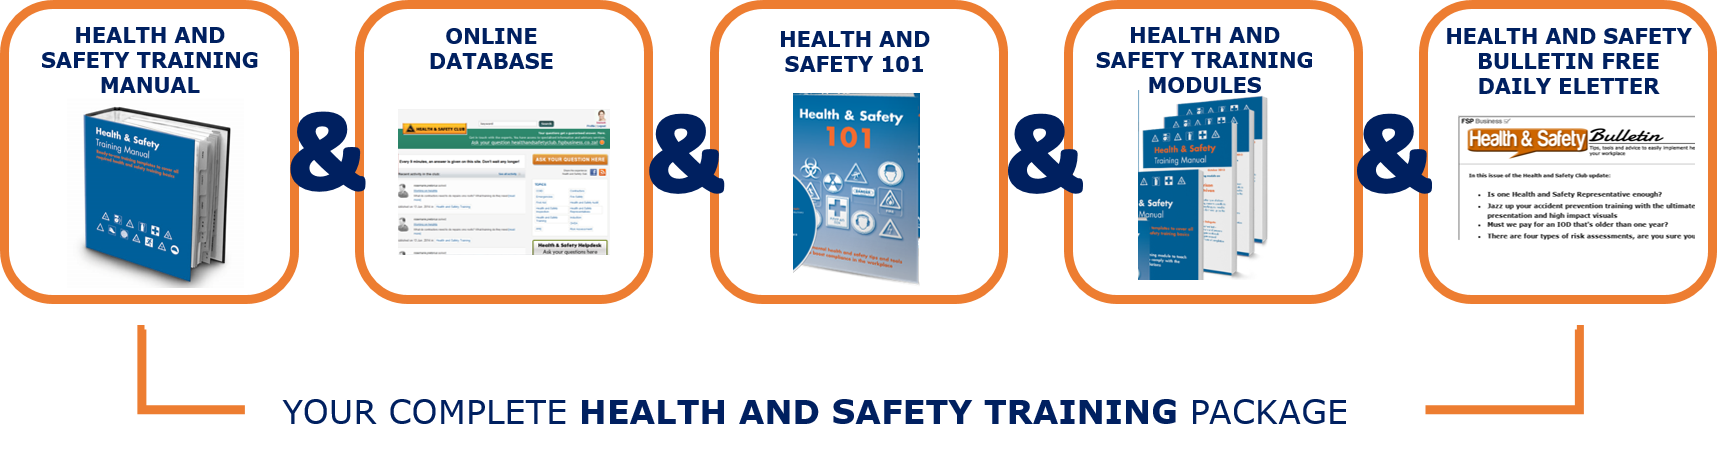 Health & Safety Training Manual service